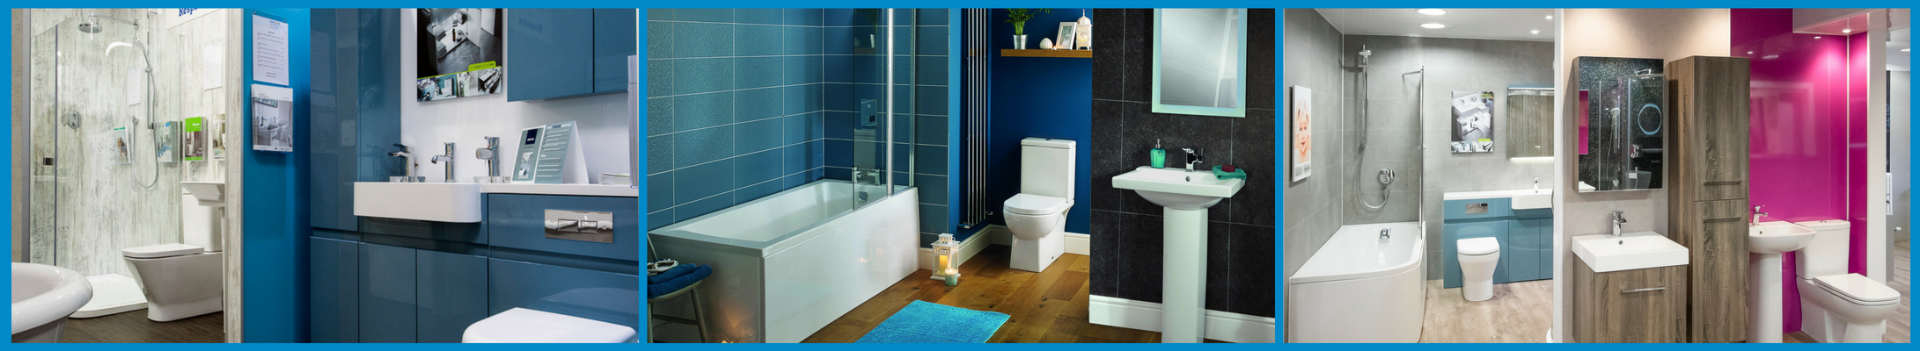 Plumbstore Bathroom showrooms | locations across Scotland